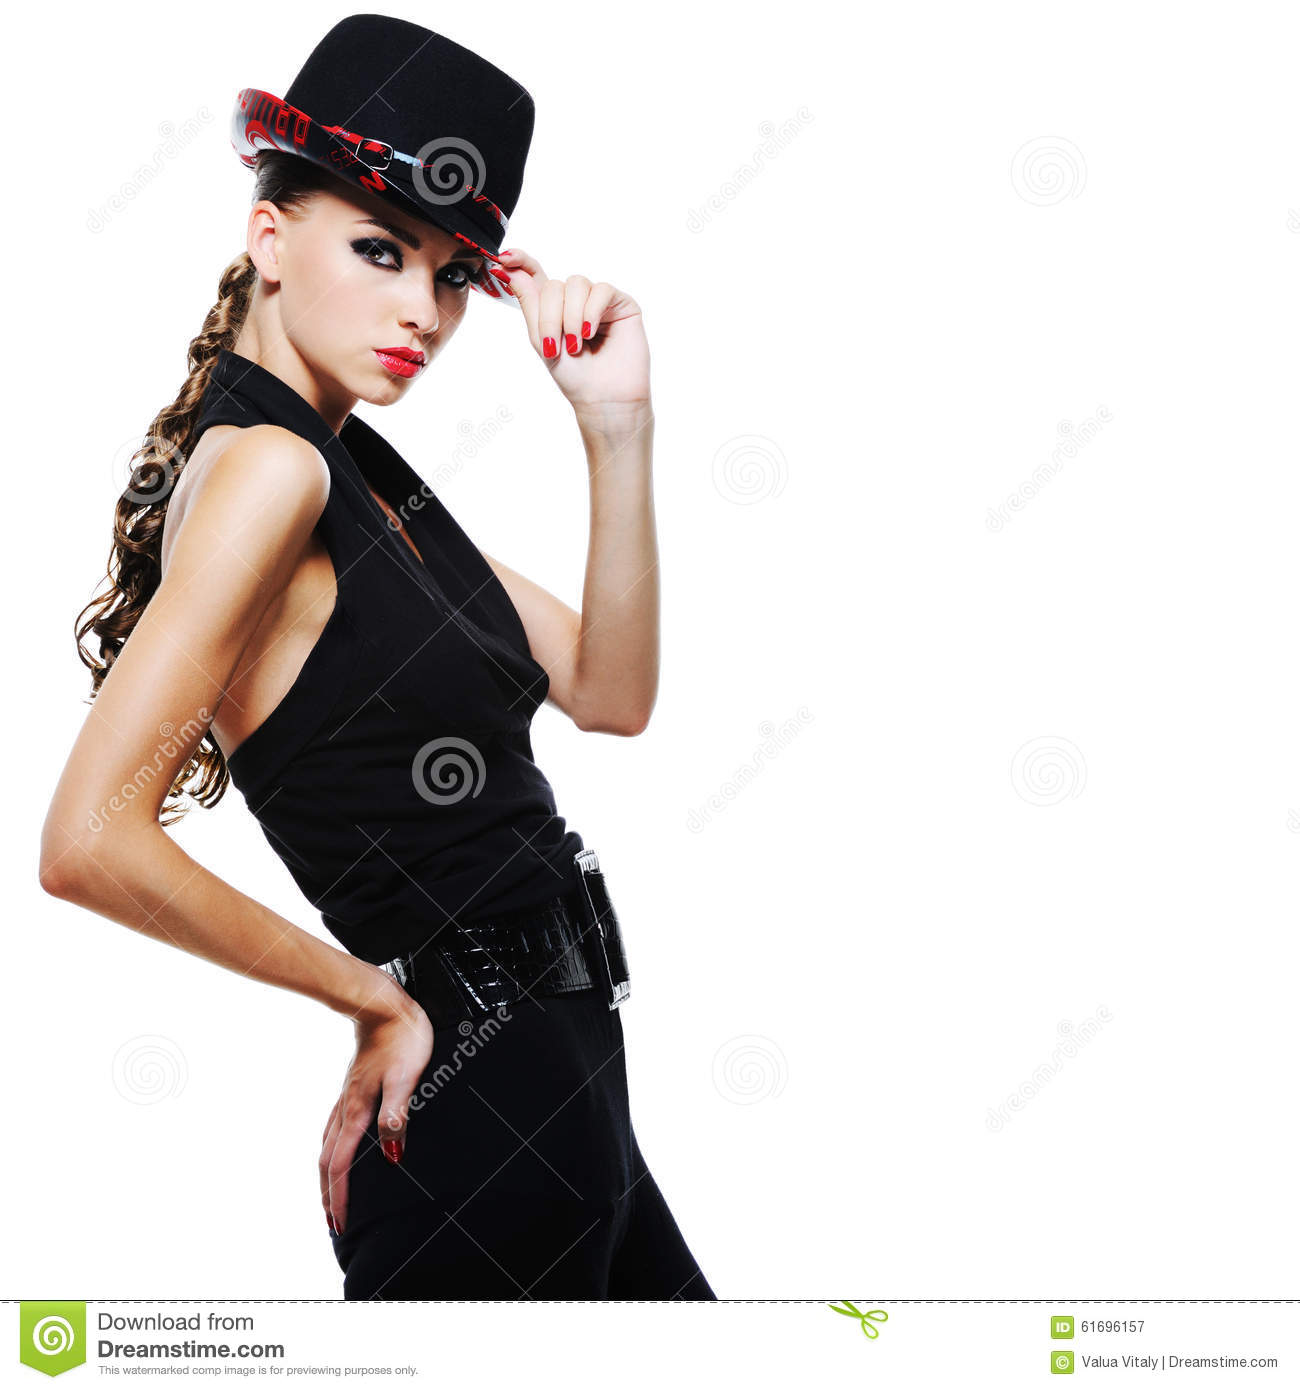 Elegant Adult Girl In Black With Stylish Black Hat Stock Image ... 0a695377de9